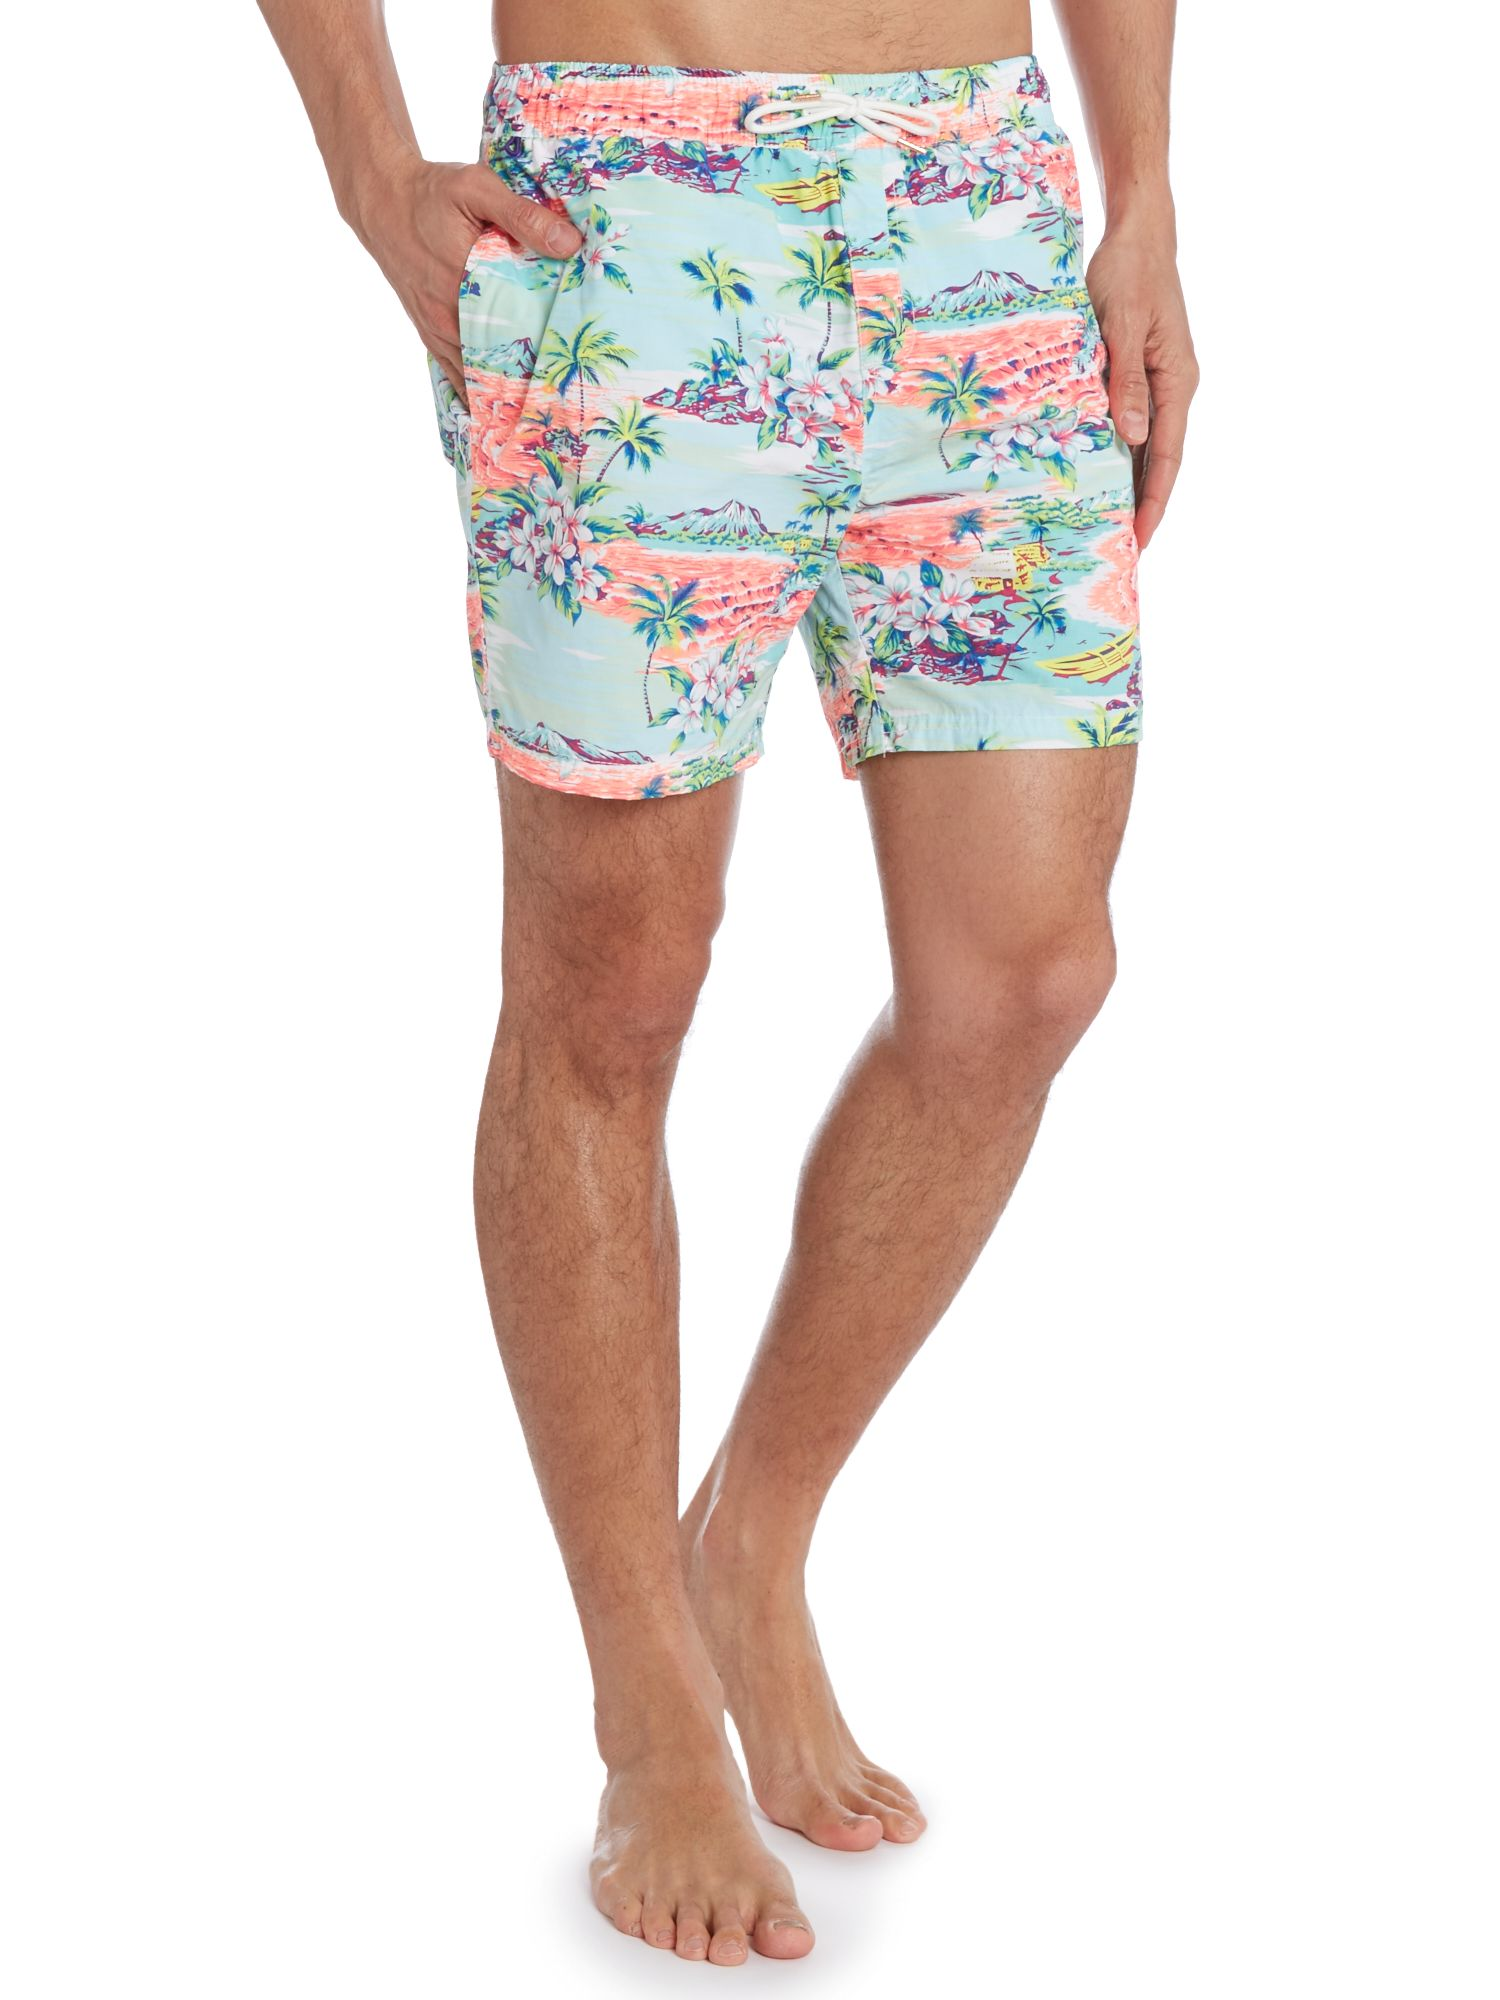 All-over printed hawaii swimshort